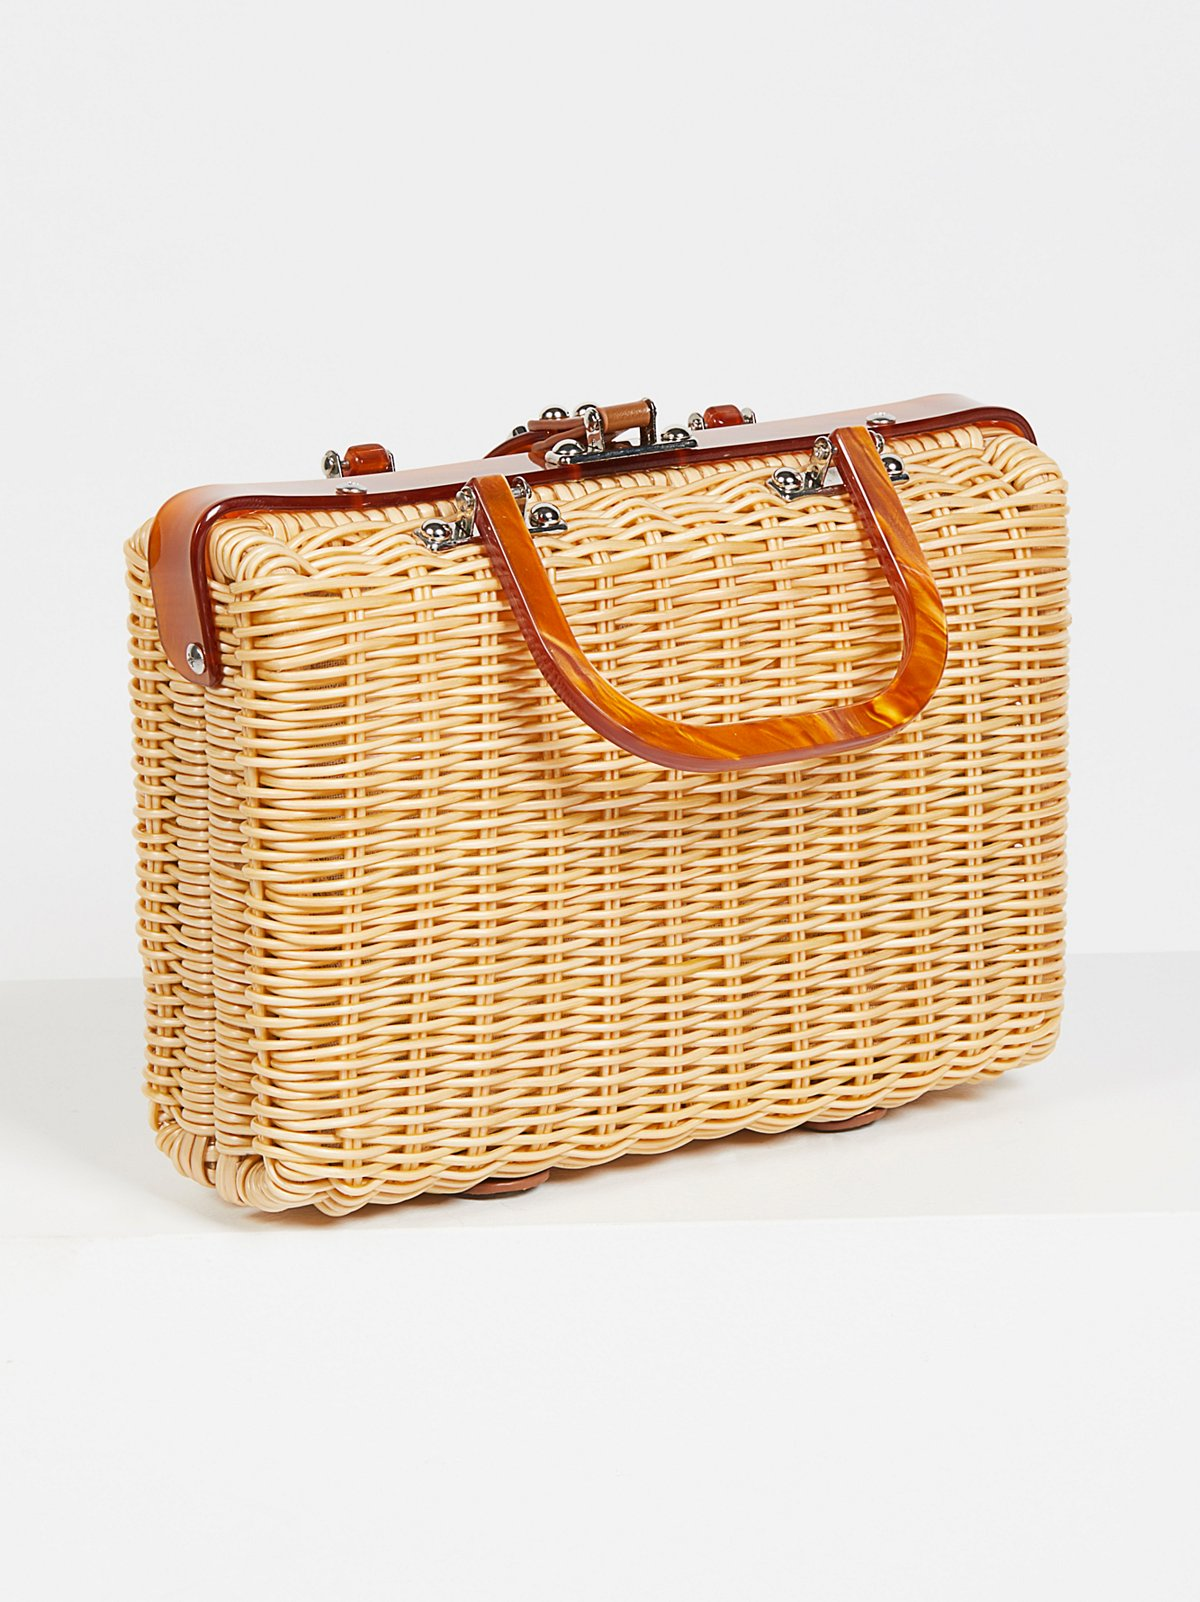 PICNIC BASKET BAG - This bag is the modern update to a basket bag once carried by Jane Birkin. The most stylish of the bunch, this is a more structured, true handbag. A sweet addition to a sundress, but just as good with jeans, its easy to fit a slim wallet, cellphone, and makeup essentials.